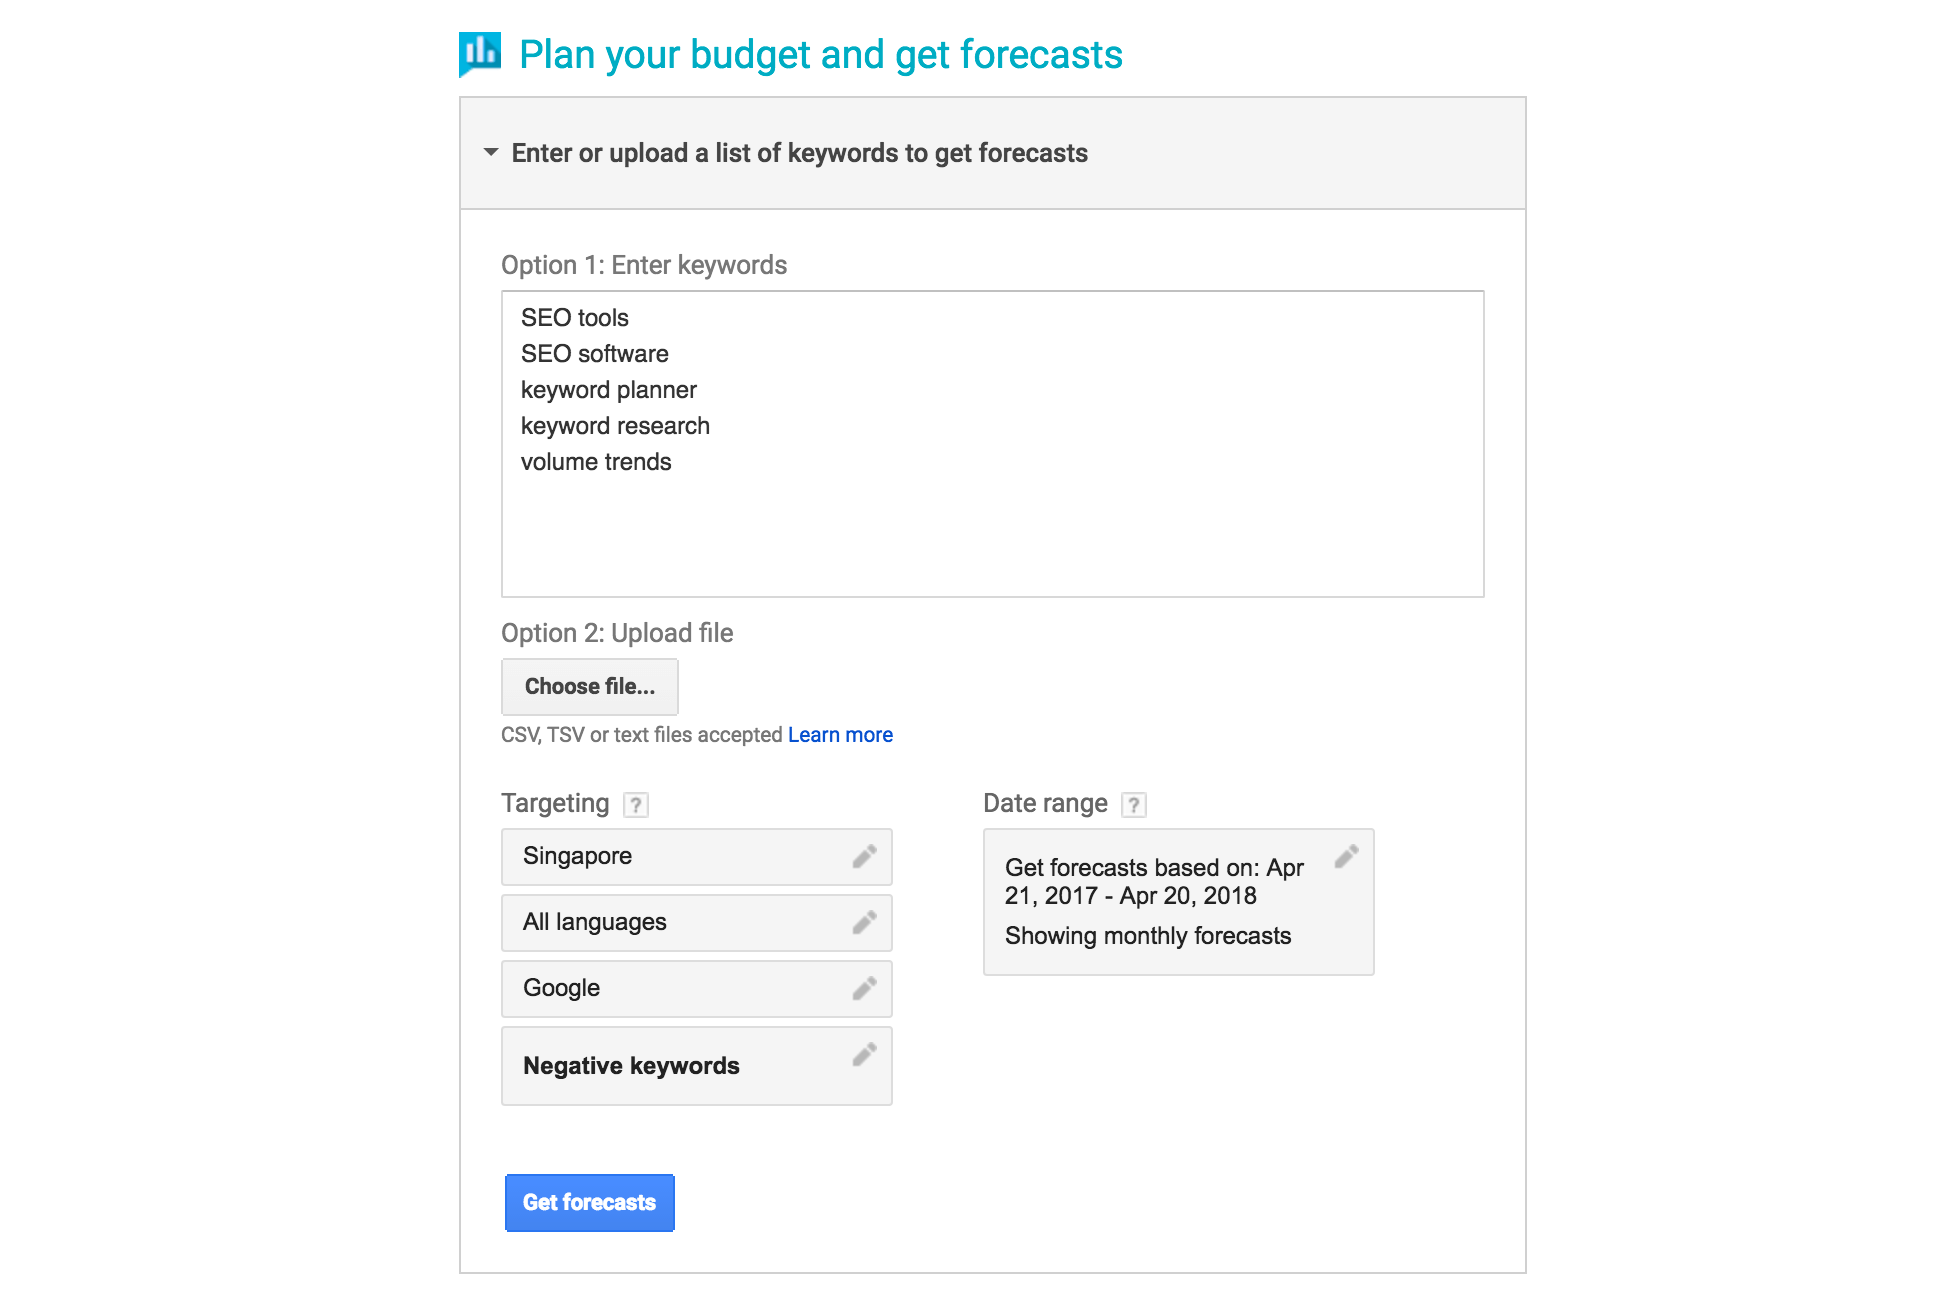 plan your budget and get forecasts